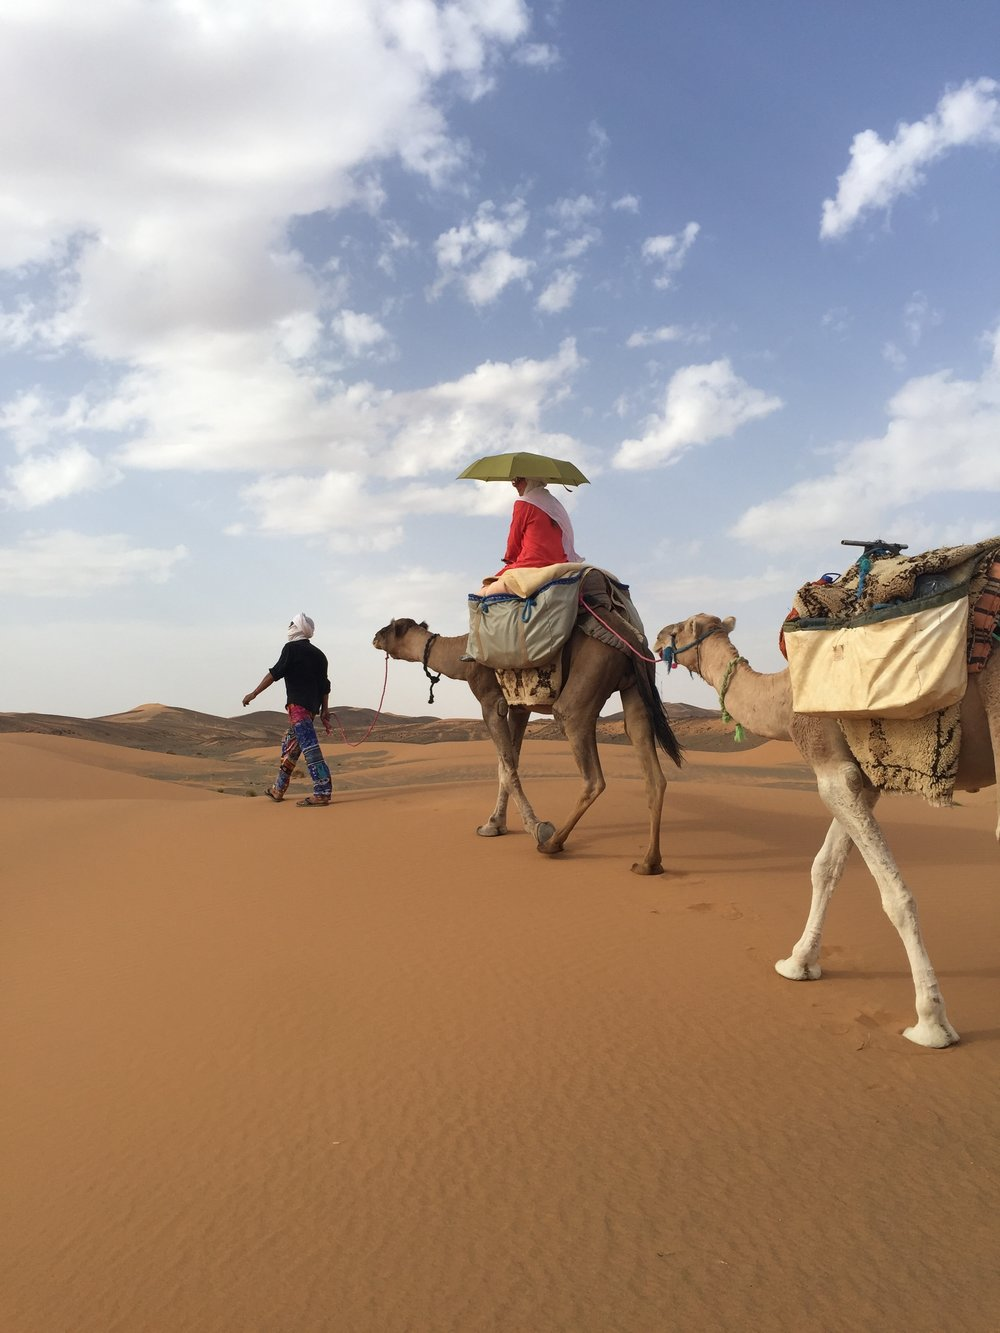 Making my own shade in the Sahara. I didn't realize this is done via turban not umbrella.